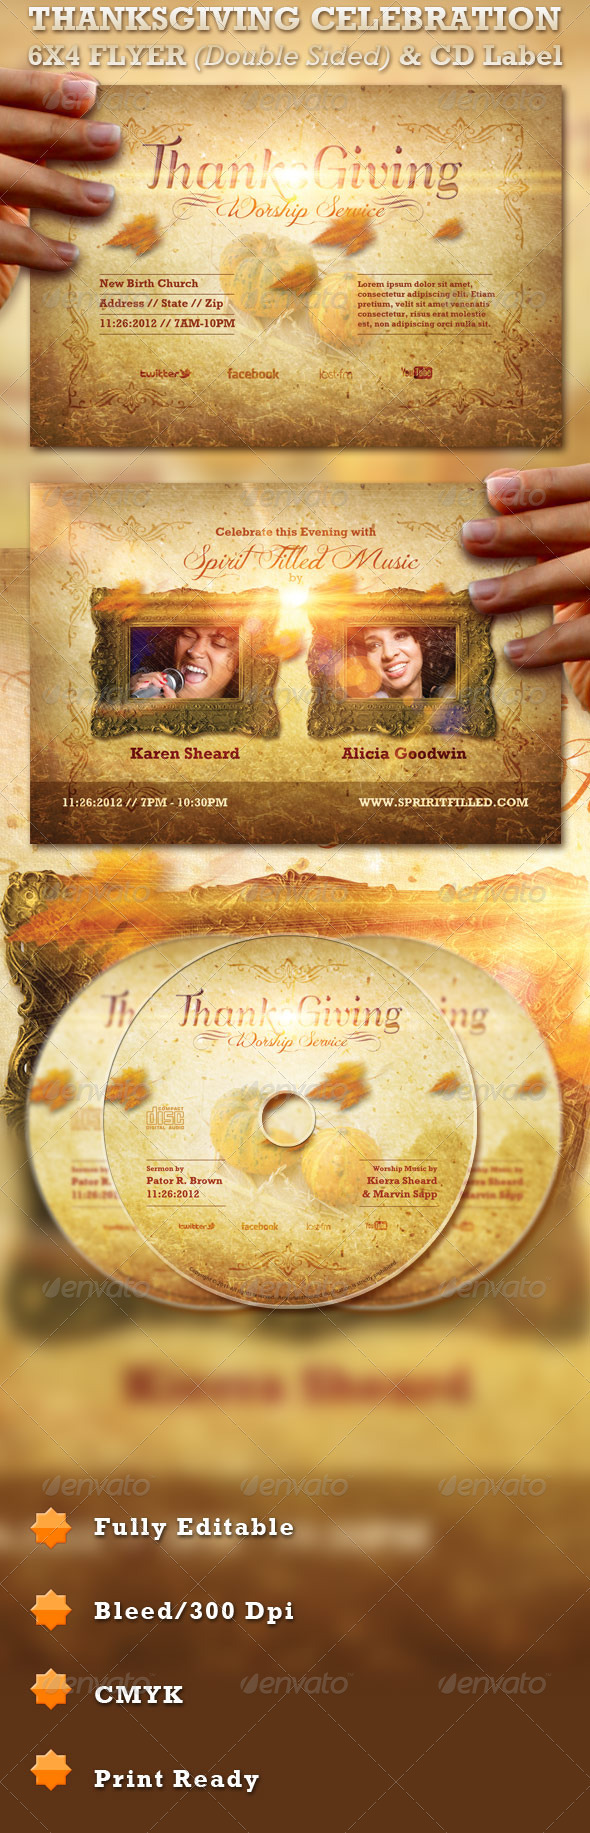 Thanksgiving Celebration Flyer and CD Label  - Church Flyers